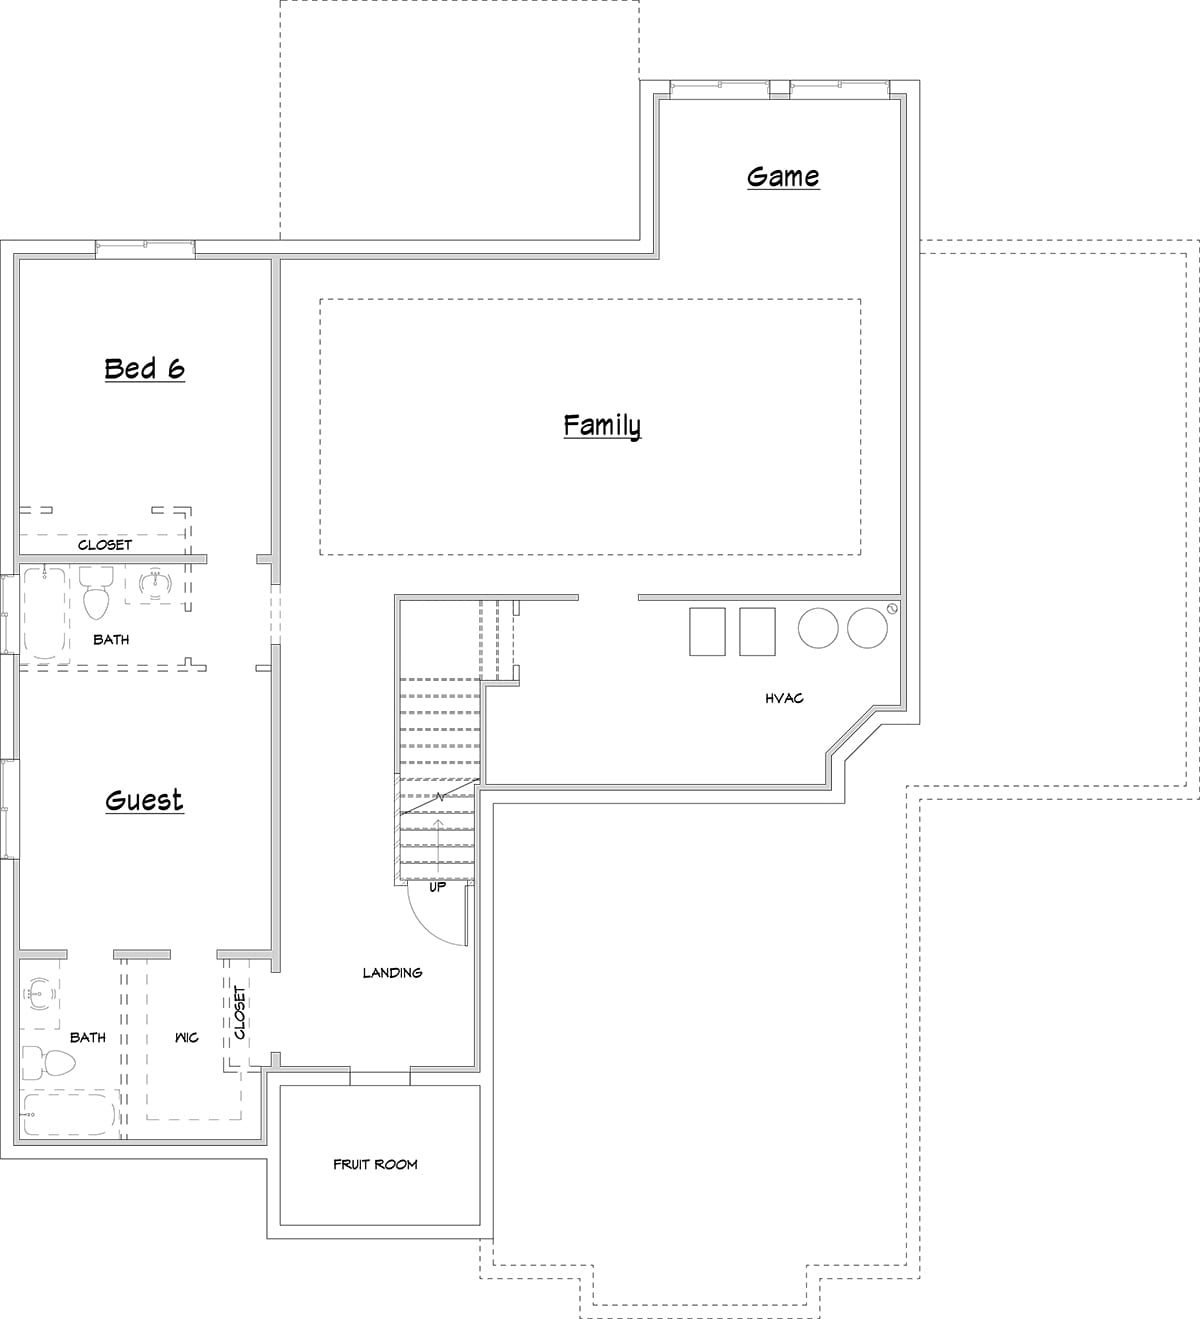 Before And After Bathroom Remodels. Image Result For Before And After Bathroom Remodels